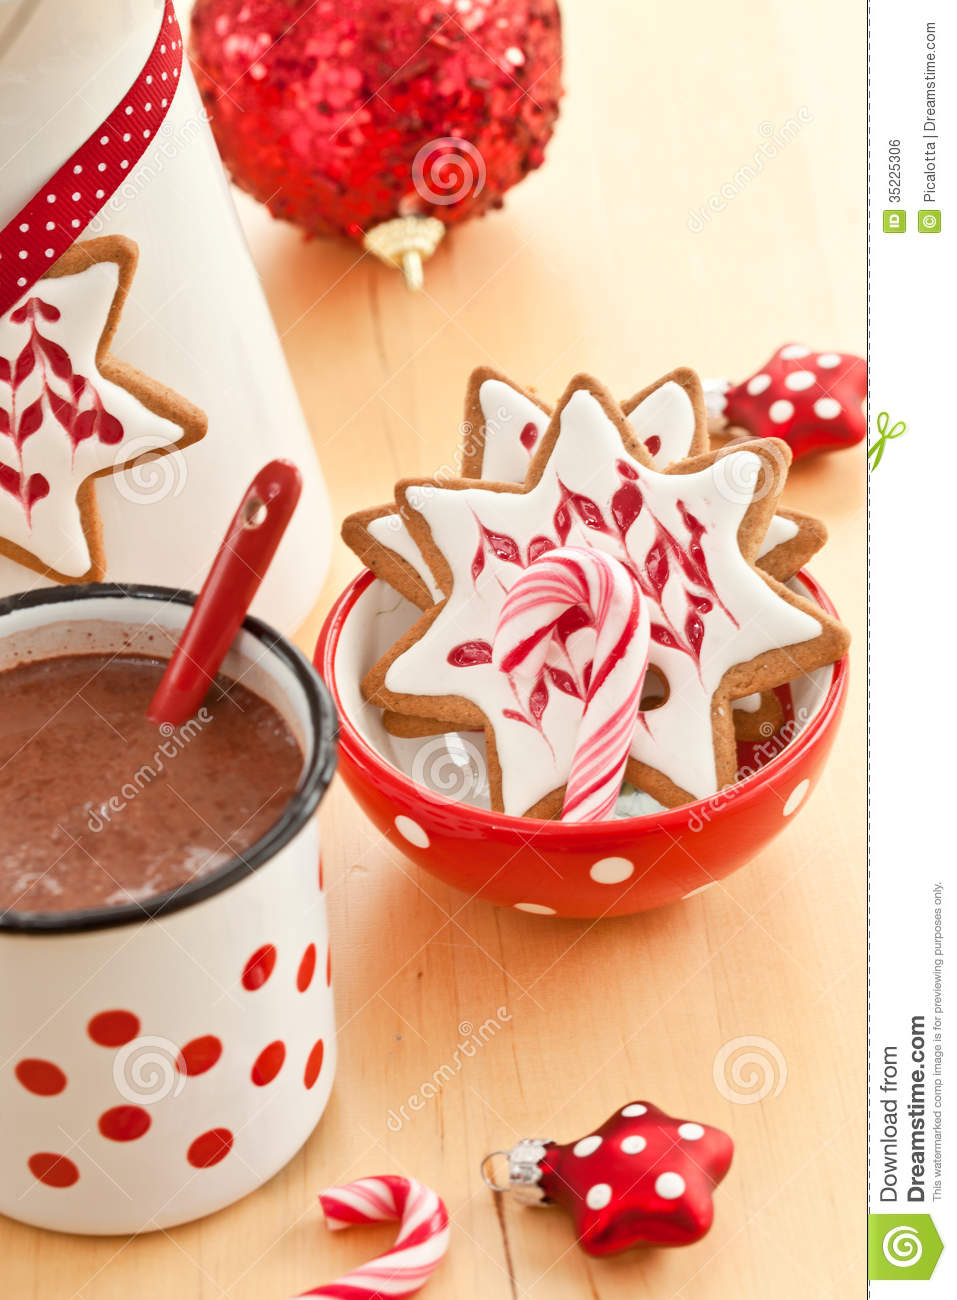 Hot Chocolate And Colorful Decorated Christmas Cookies Stock Photo